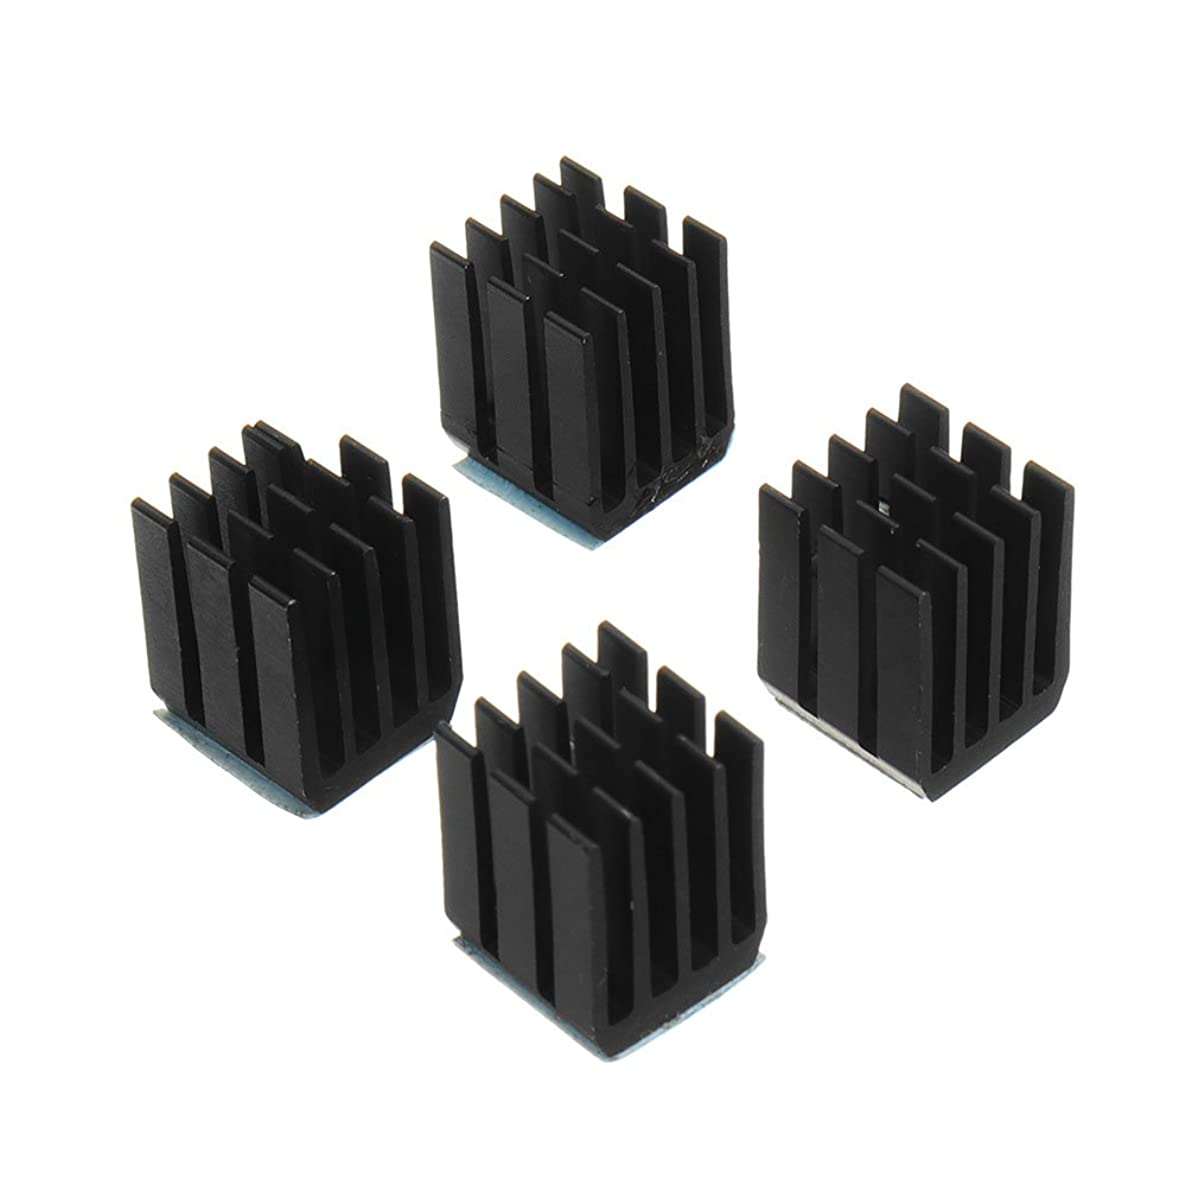 Farwind 4PCS Black TMC2100 Stepper Motor Driver Cooling Heatsink with Back Glue for 3D Printer